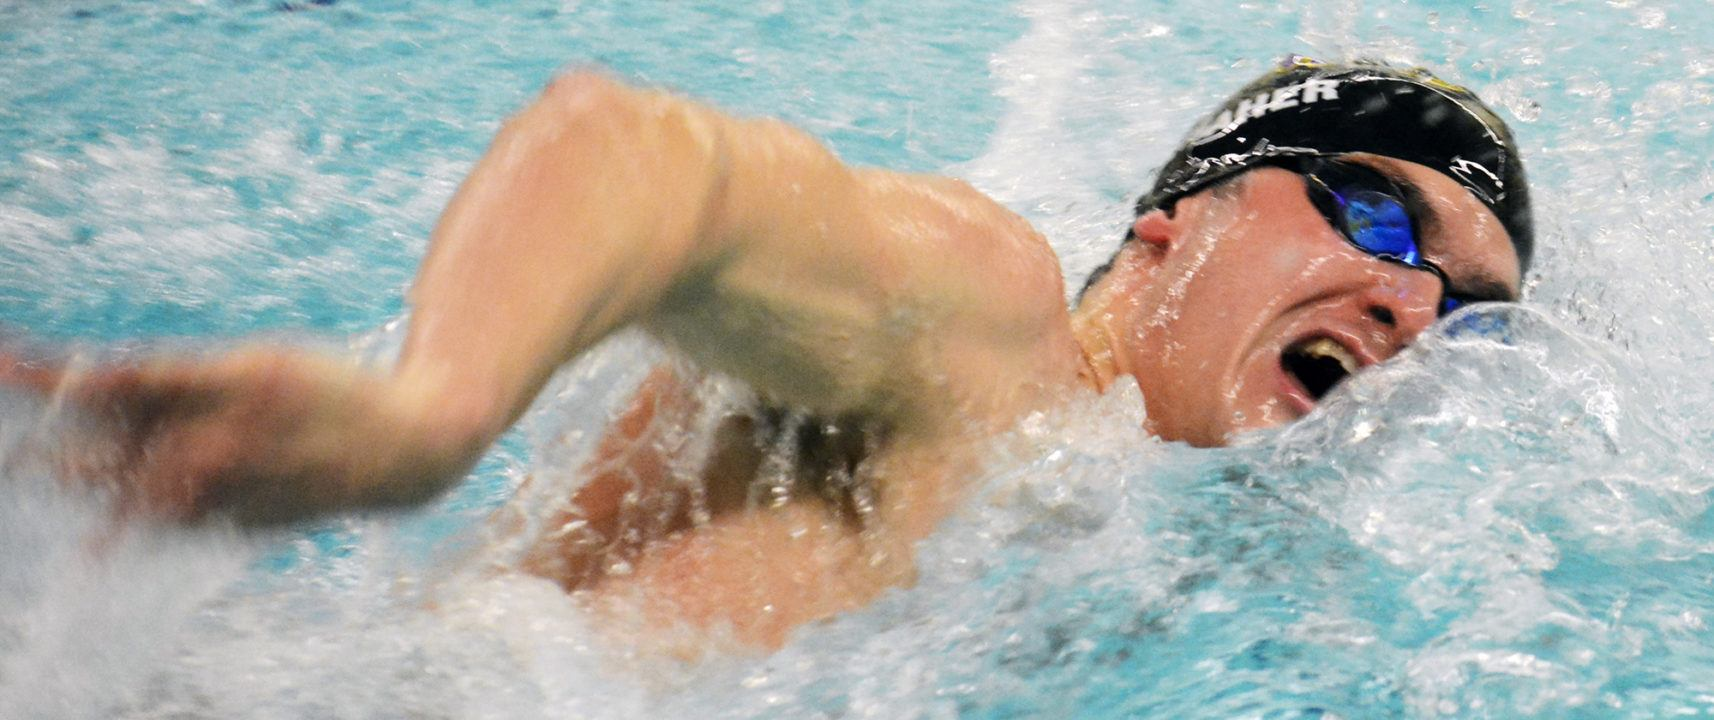 NESCAC Day 1: Williams Claims Early Lead with 800 Free Relay Victory